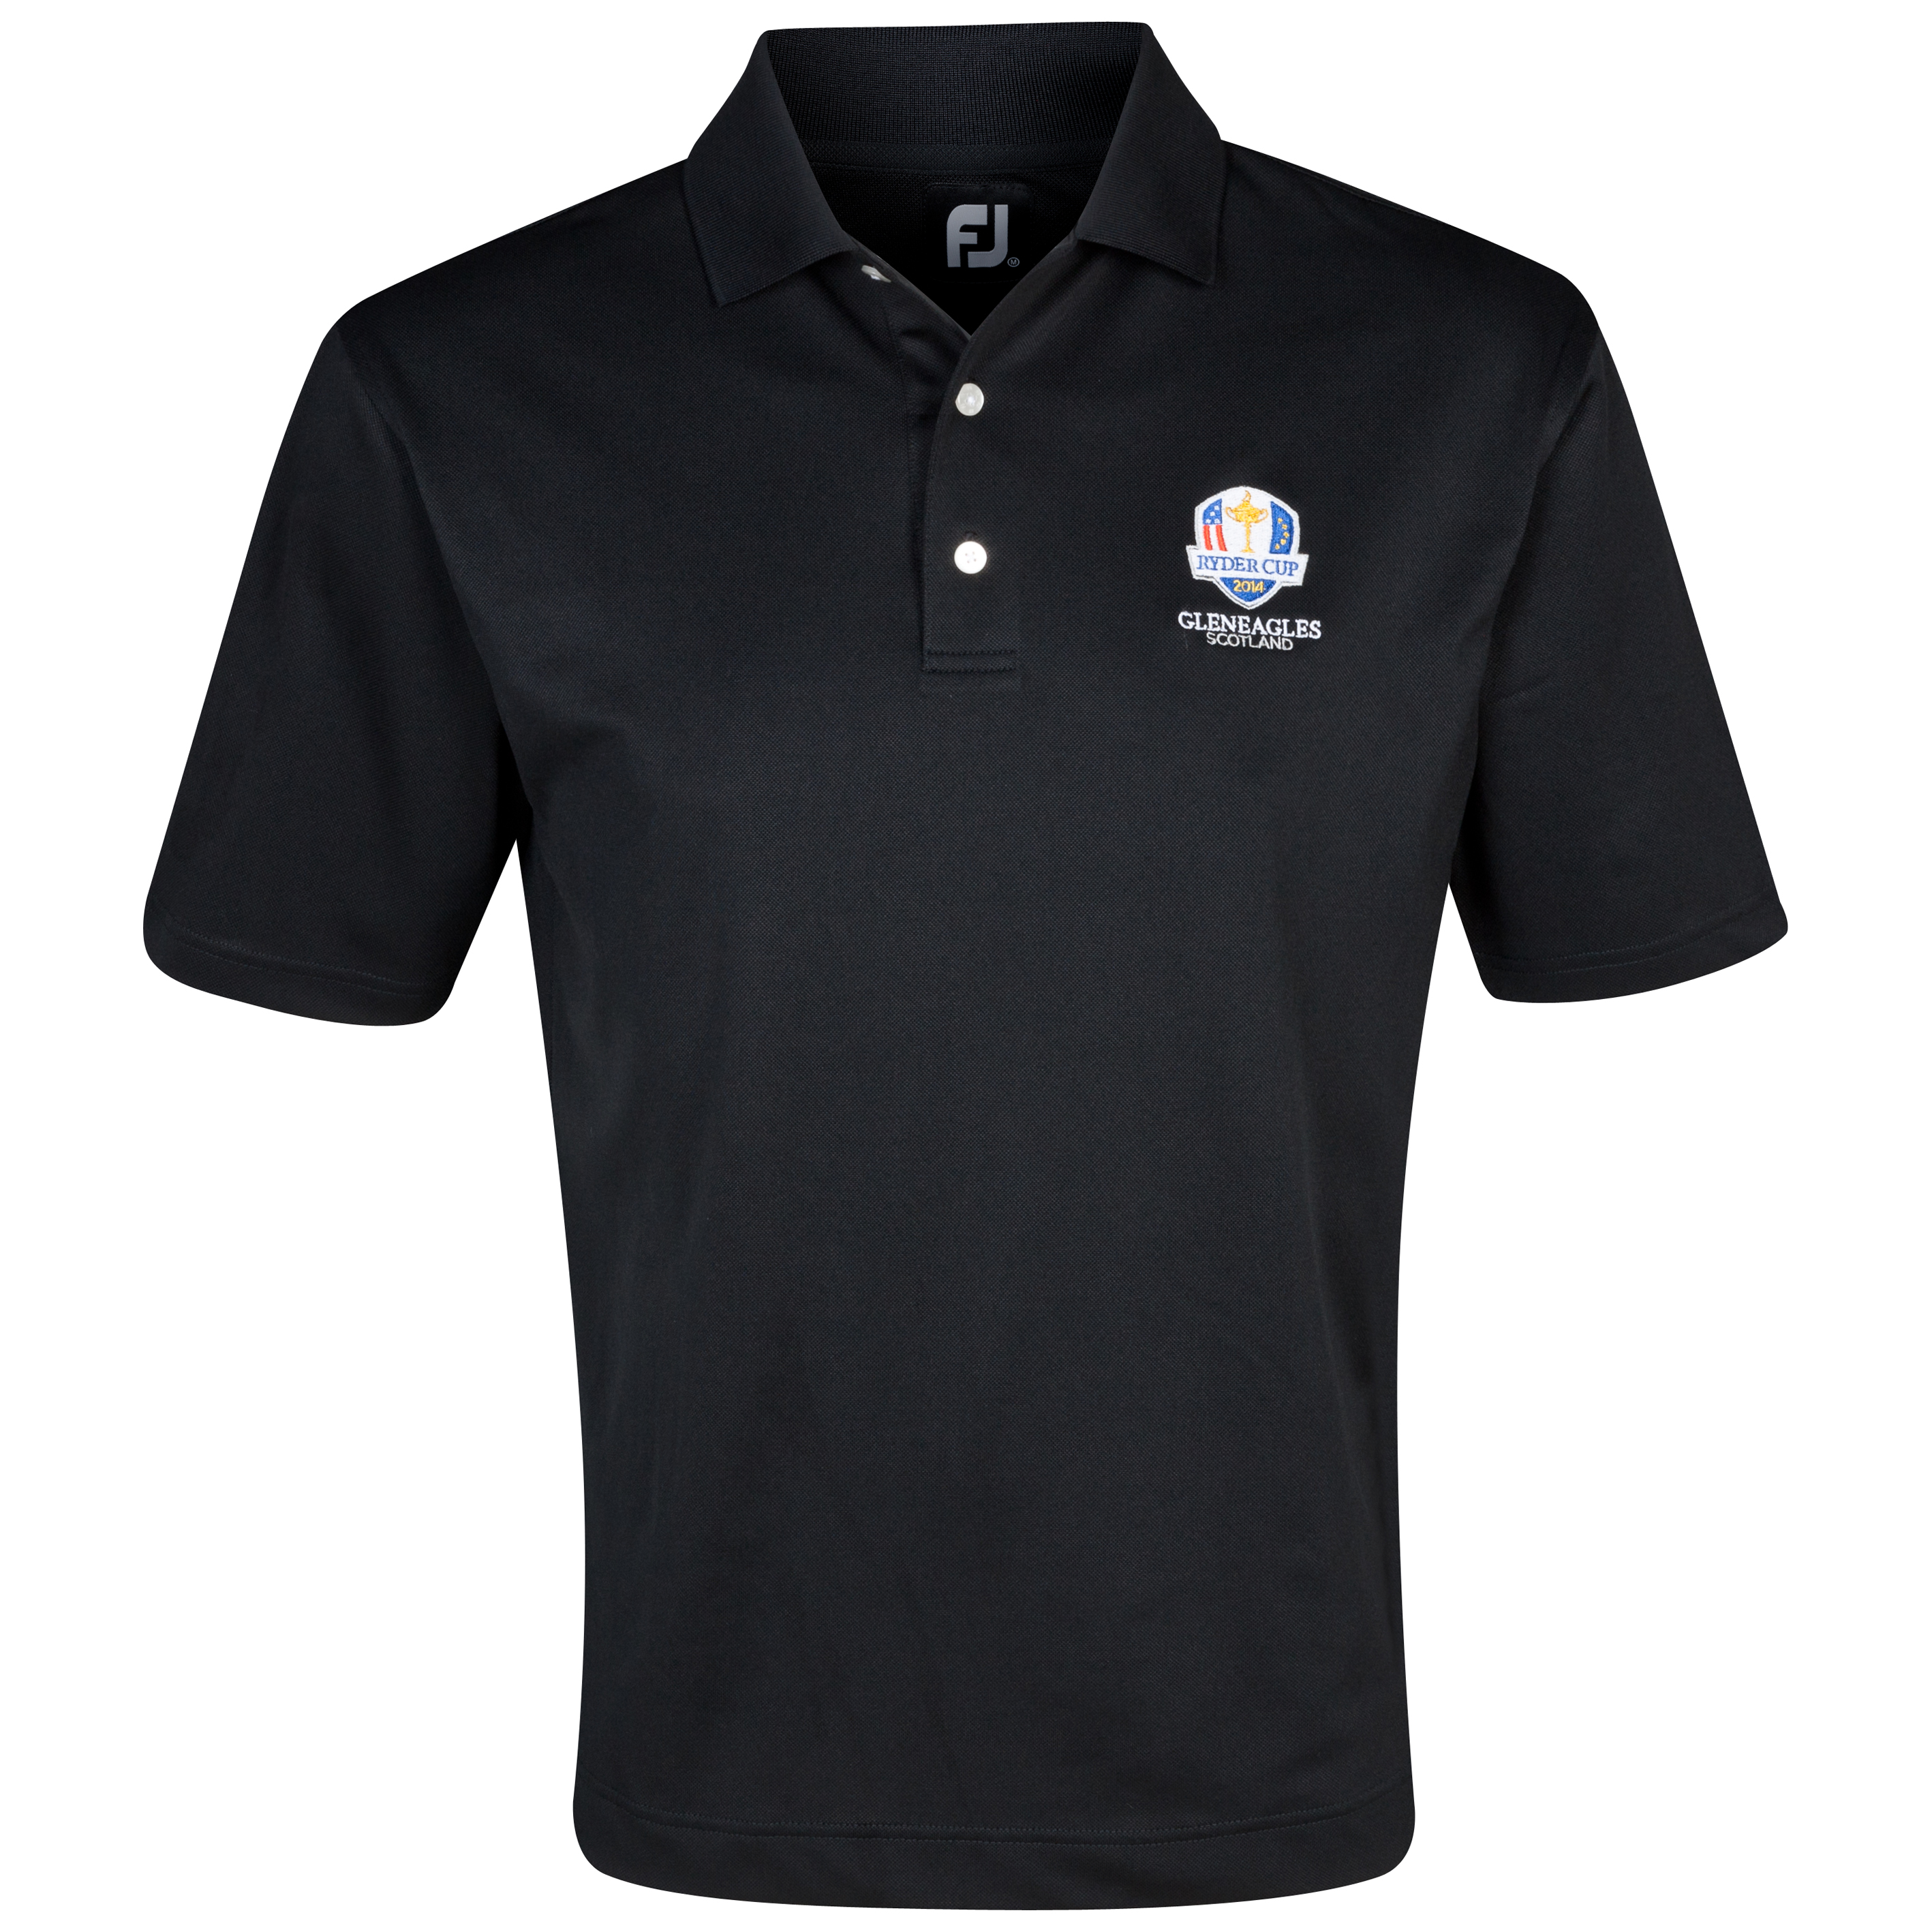 The 2014 Ryder Cup Footjoy Stretch Pique Polo Black